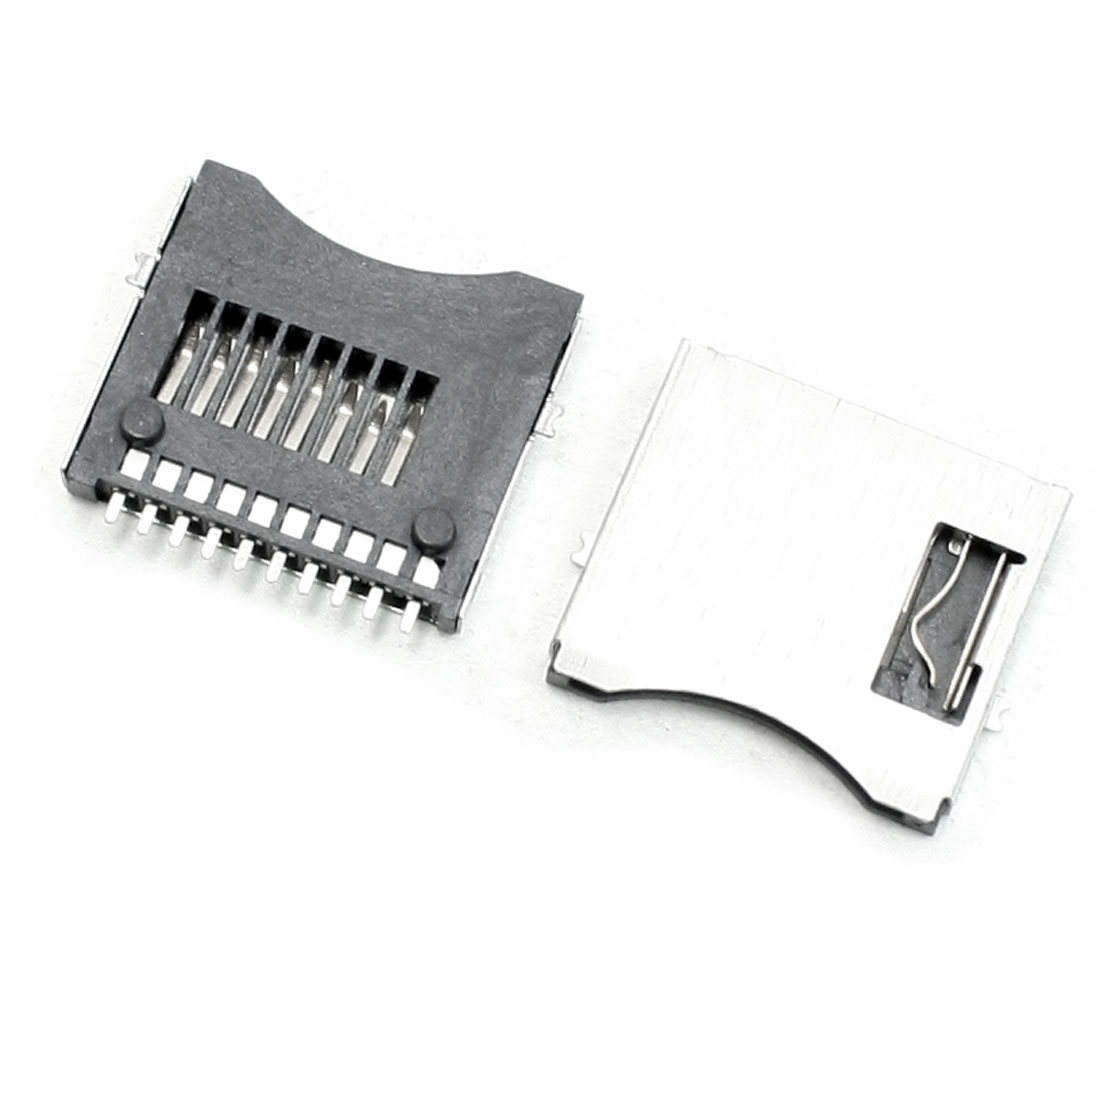 20 Pcs Micro SD TF Memory Card Sockets Connectors Slots DIY Repair Parts